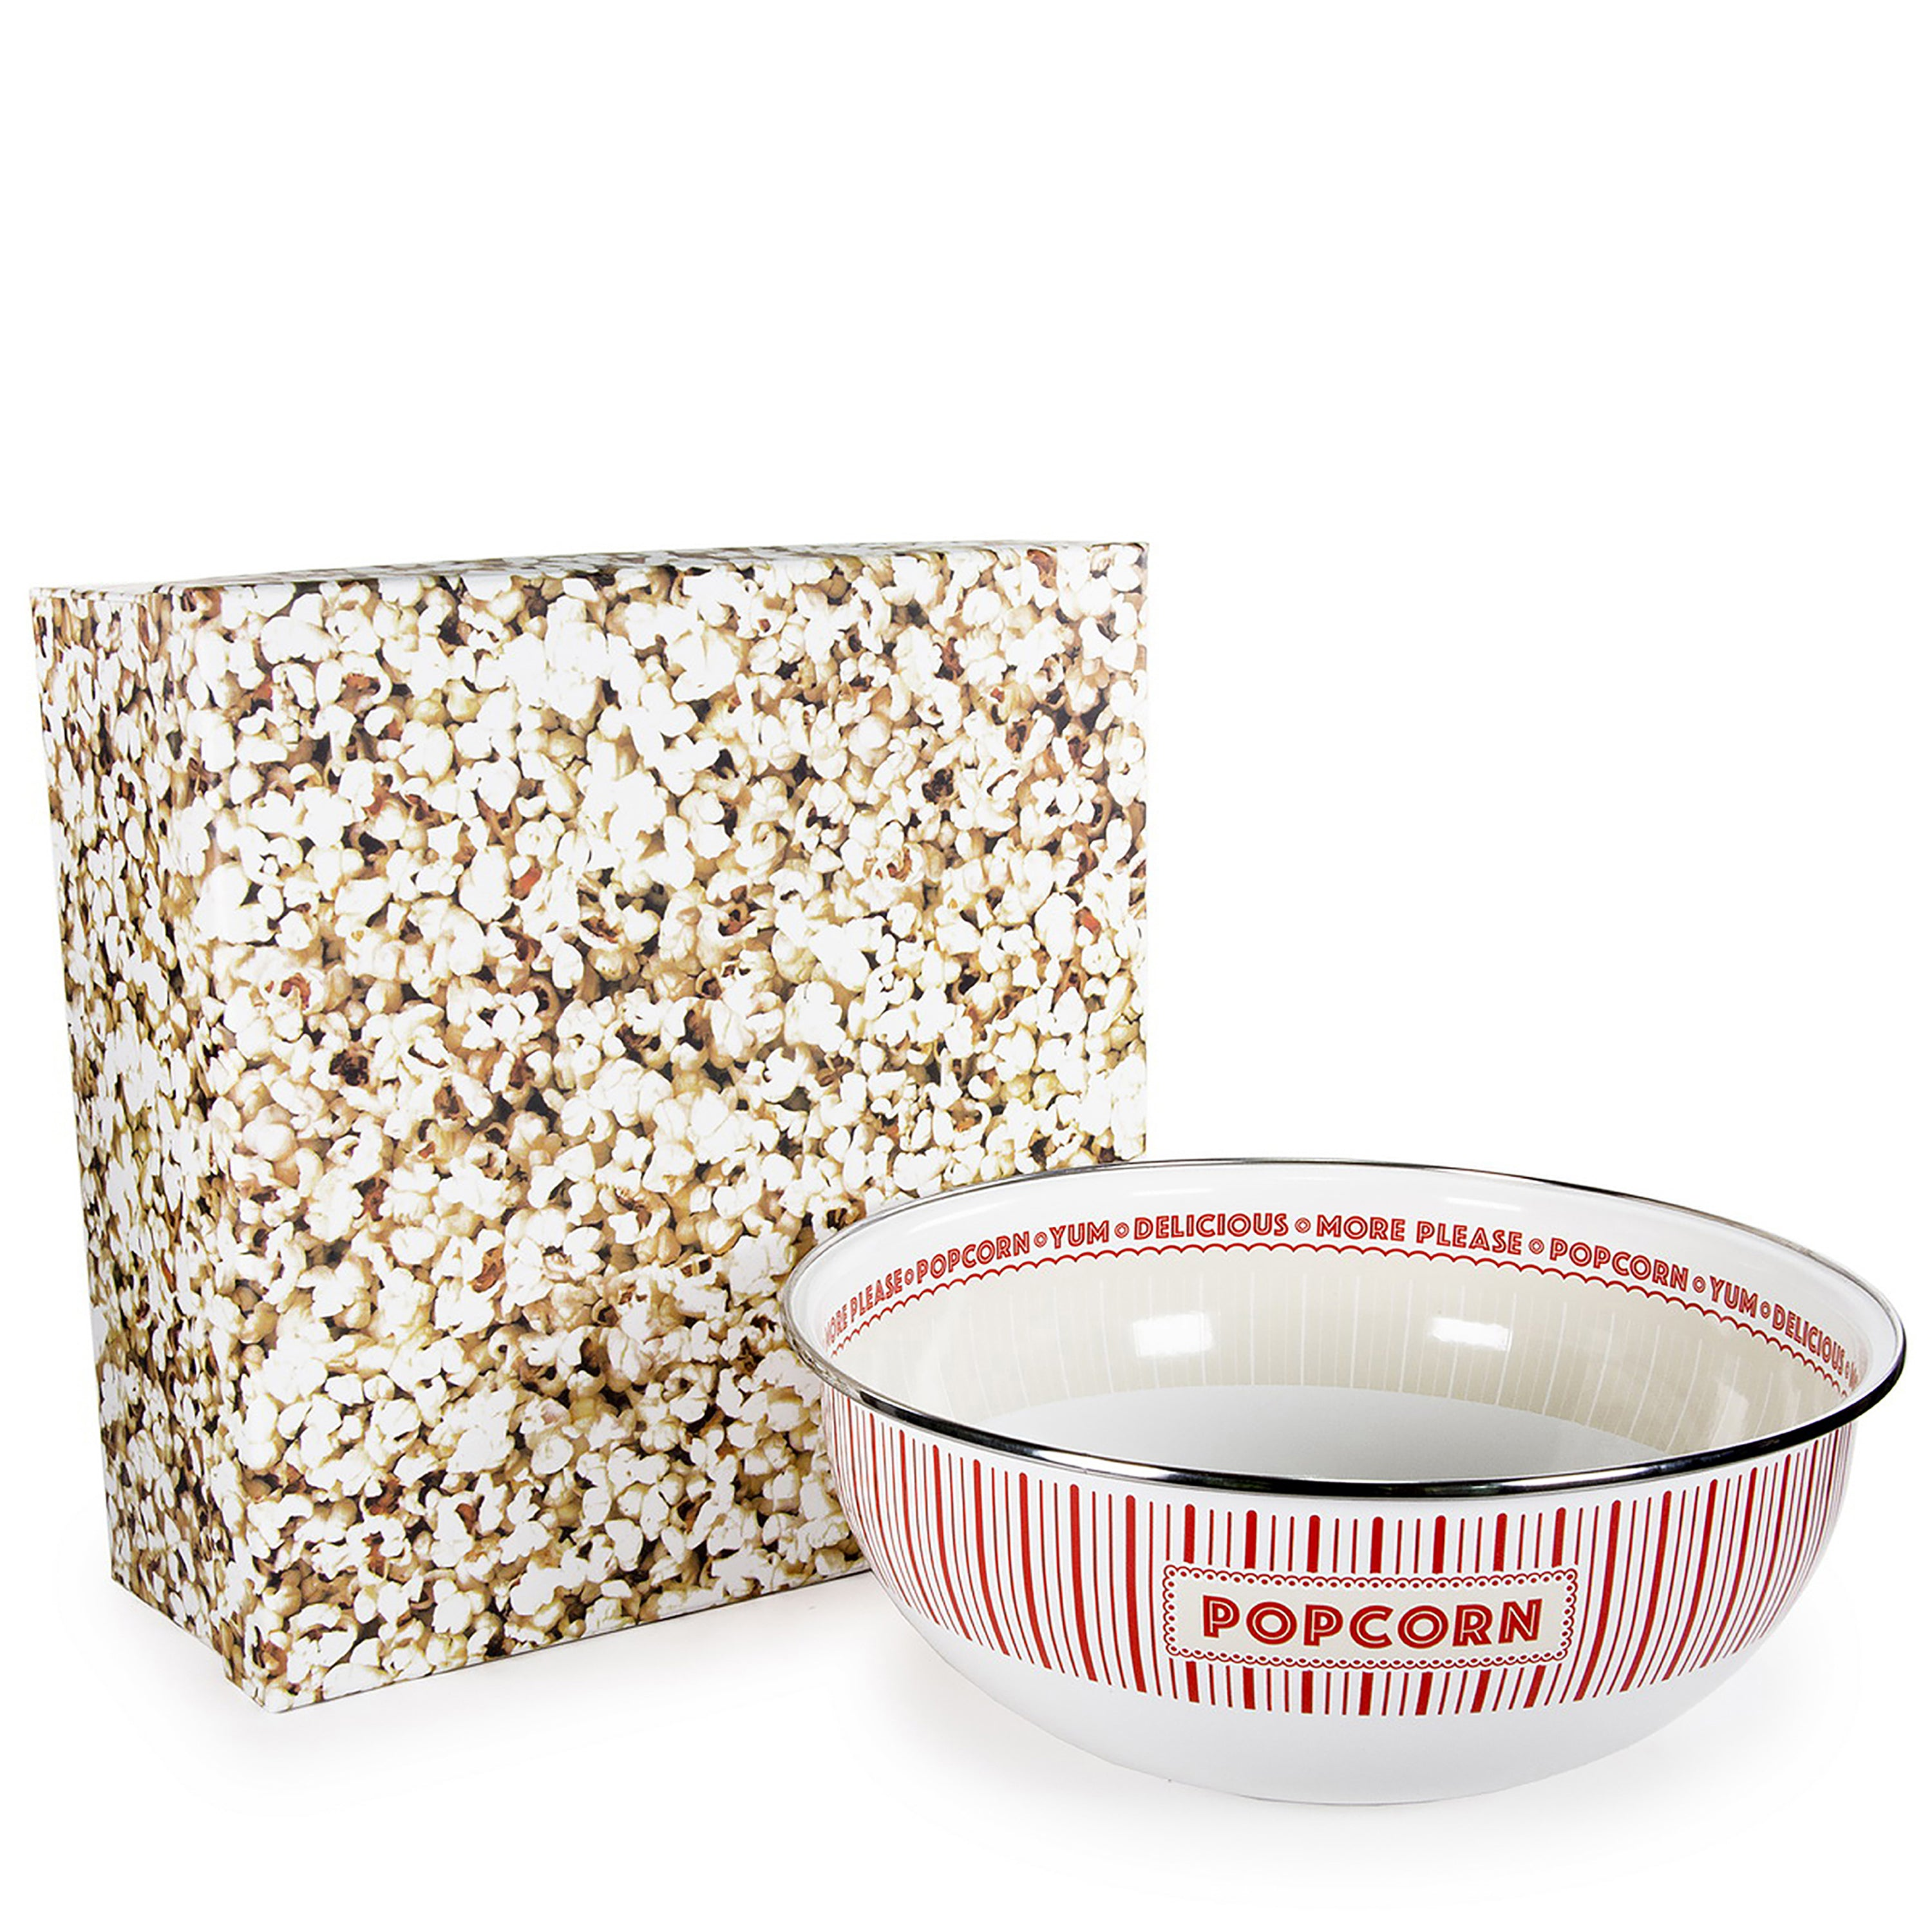 ST103 - Showtime Popcorn Boxed Image 1